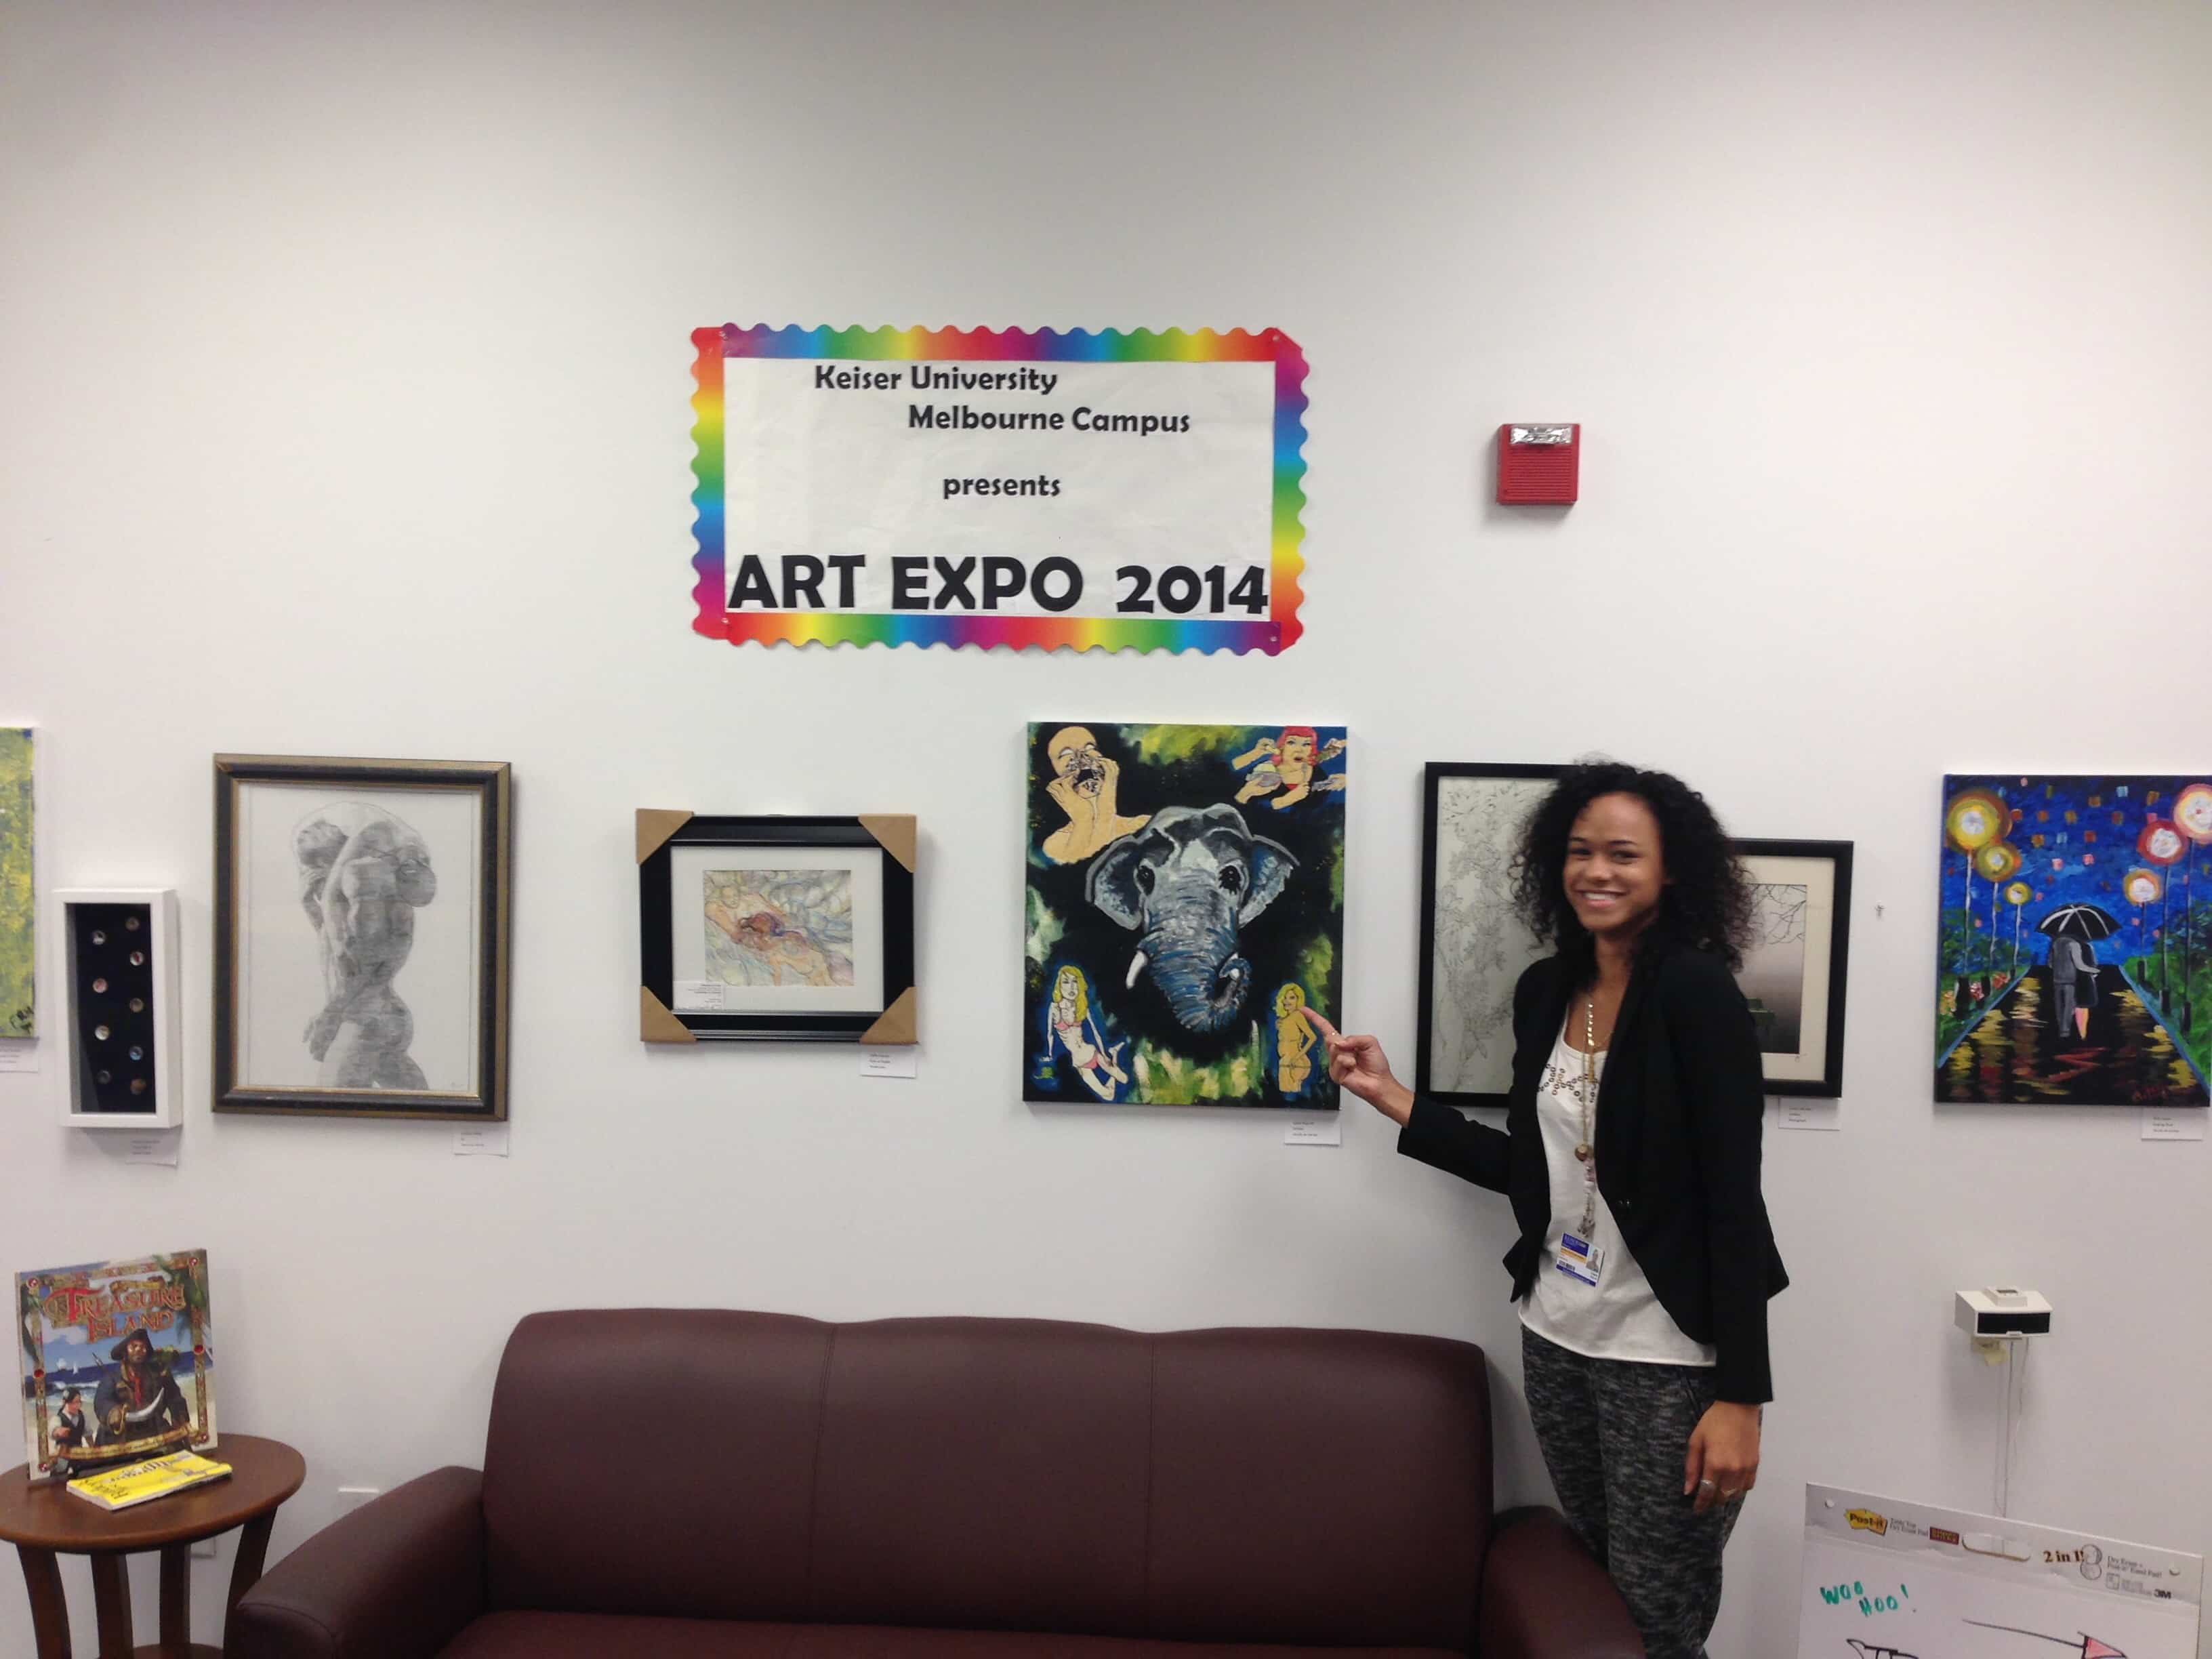 Melbourne Campus Library Hosts Art Expo 2014